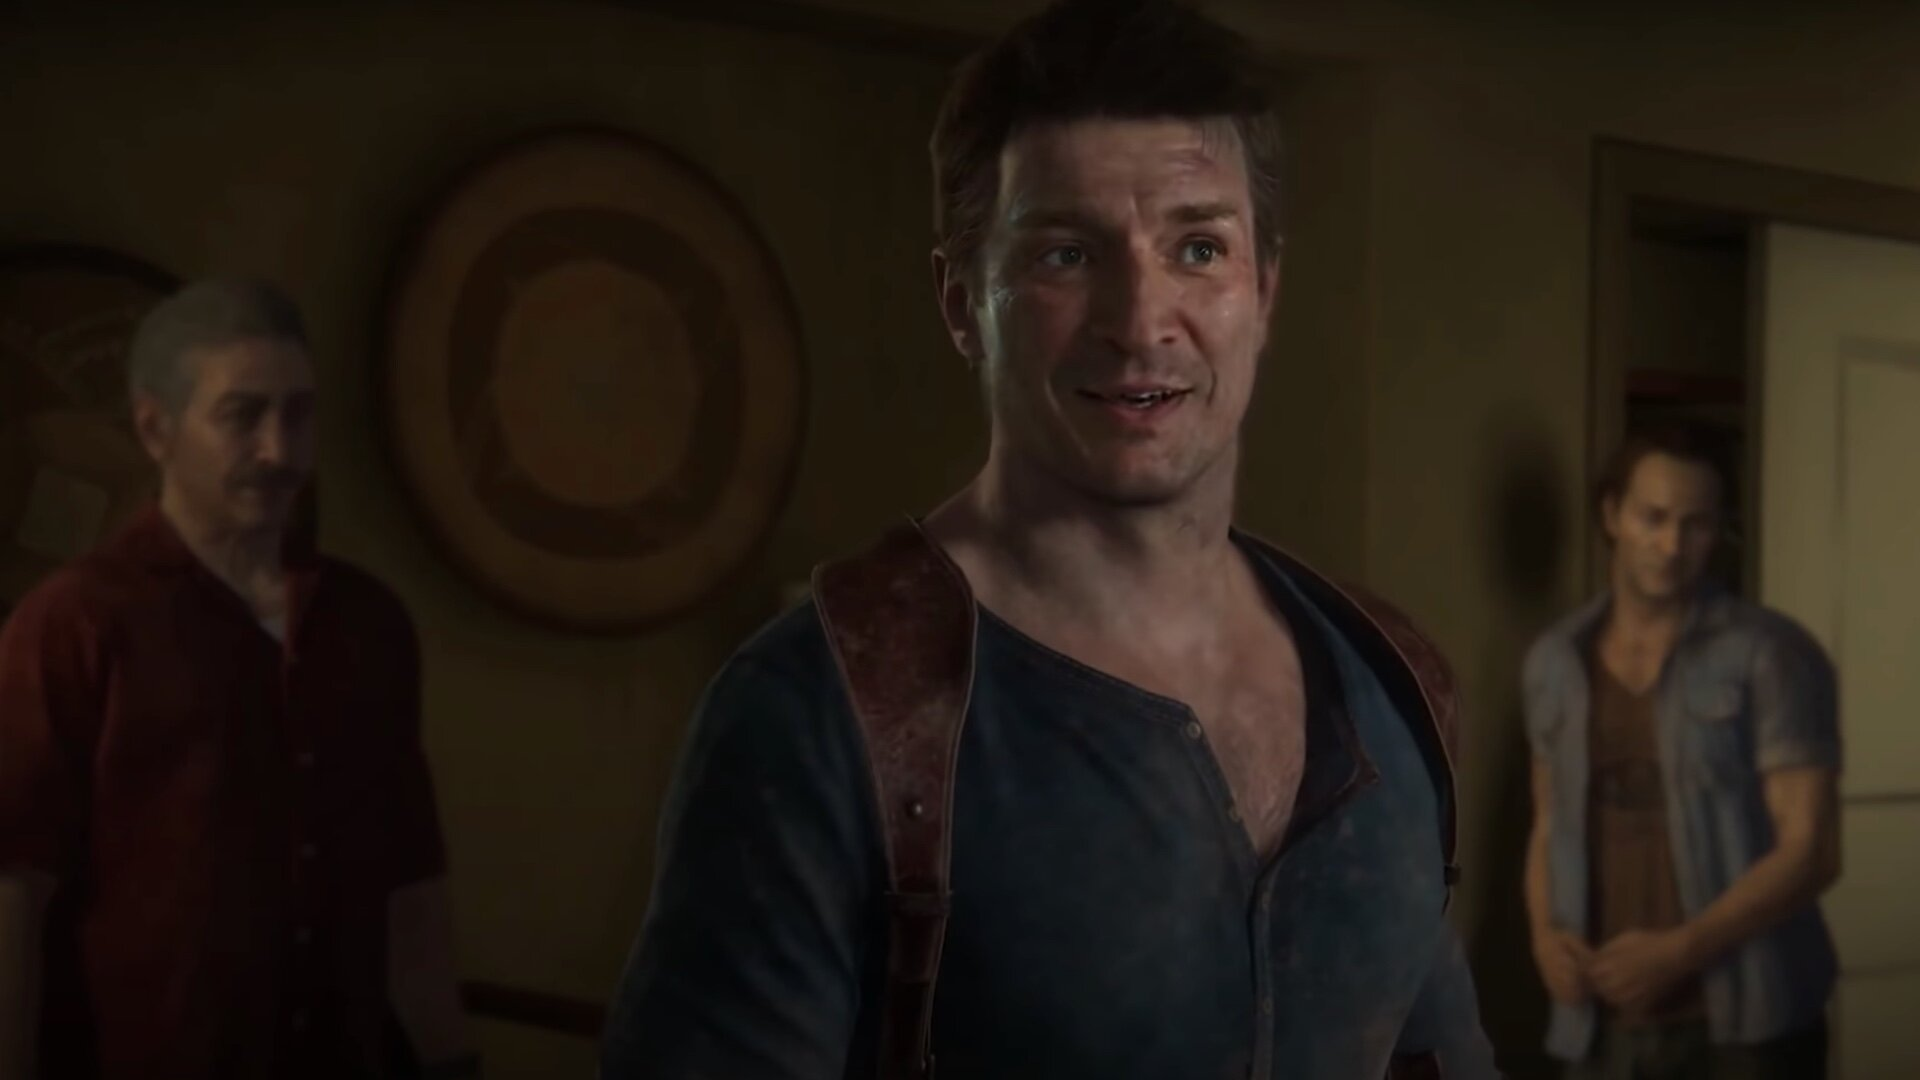 Nathan Fillion Awesomely Inserted Into Uncharted 4 As Nathan Drake